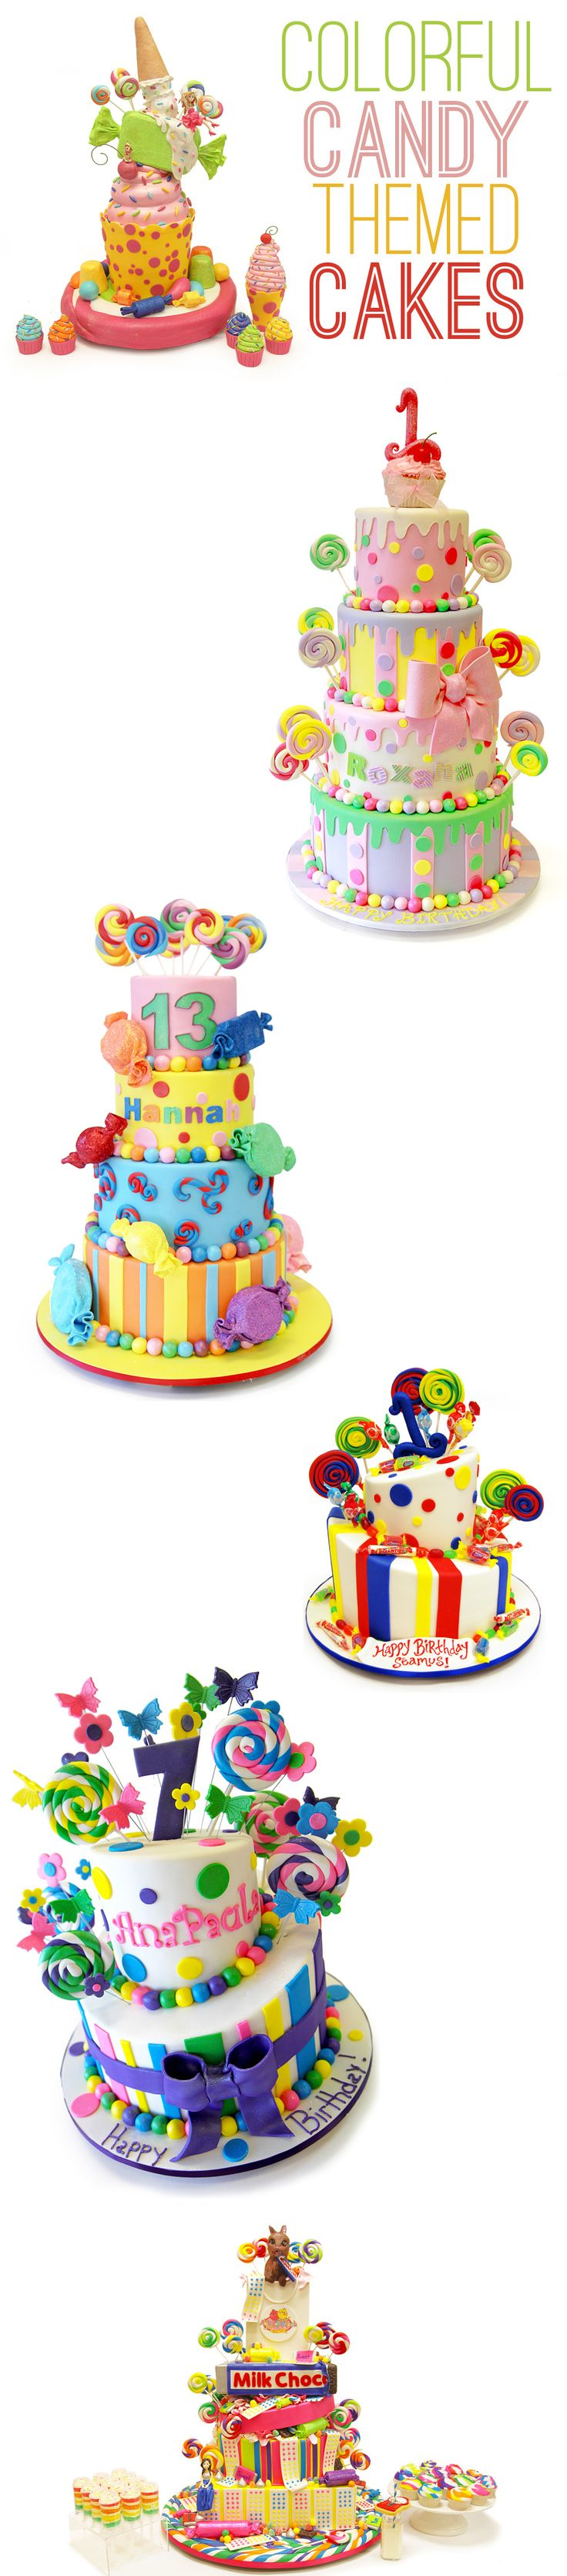 A candy themed cake can evoke nostalgic memories of childhood, or become a colorful focal point for a birthday party, shower or Bat Mitzvah. Take a look at some of our favorite candy themed cakes and find some inspiration of your own!